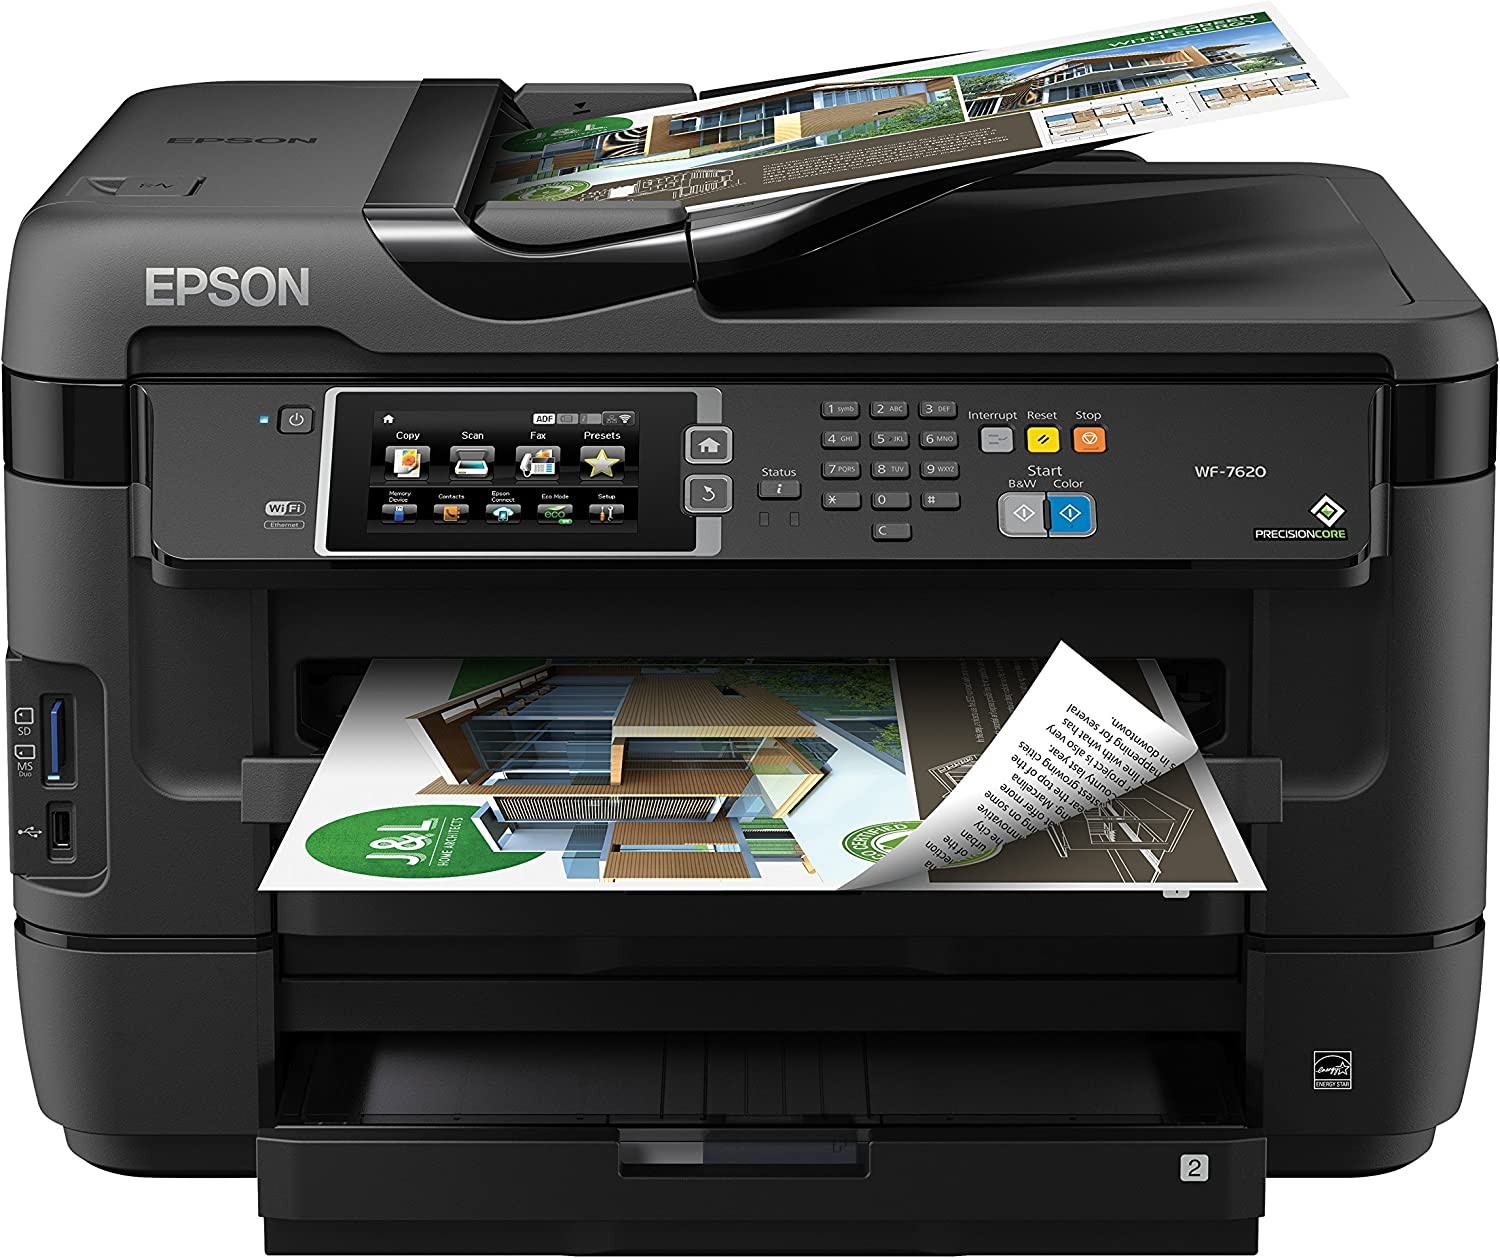 Epson WorkForce WF-7620 Wireless Color All-in-One Inkjet Printer with Scanner and Copier, Amazon Dash Replenishment Ready